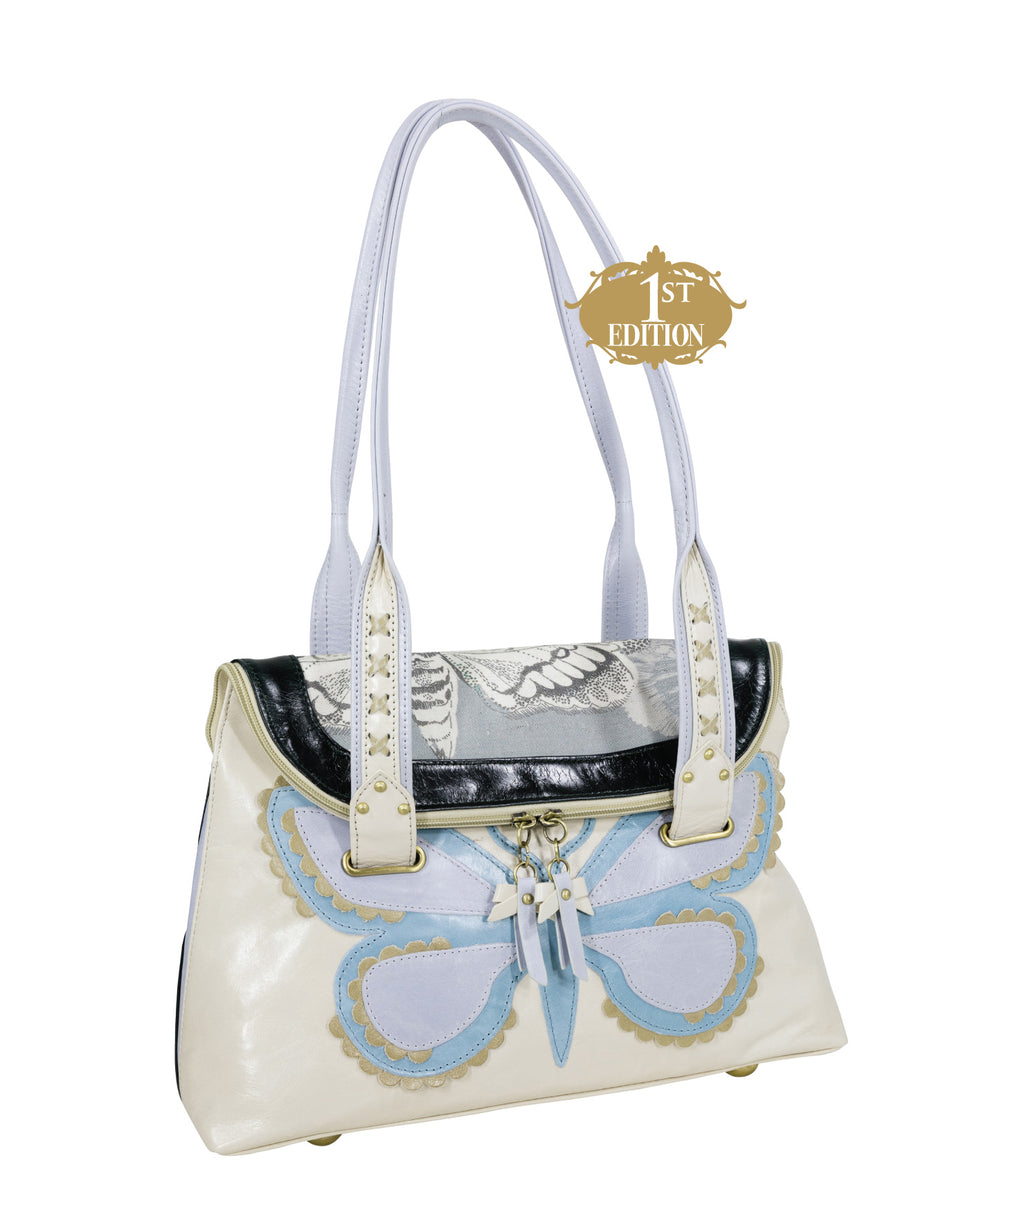 UNA Shoulder Bag - Moonlight - 1st Edition